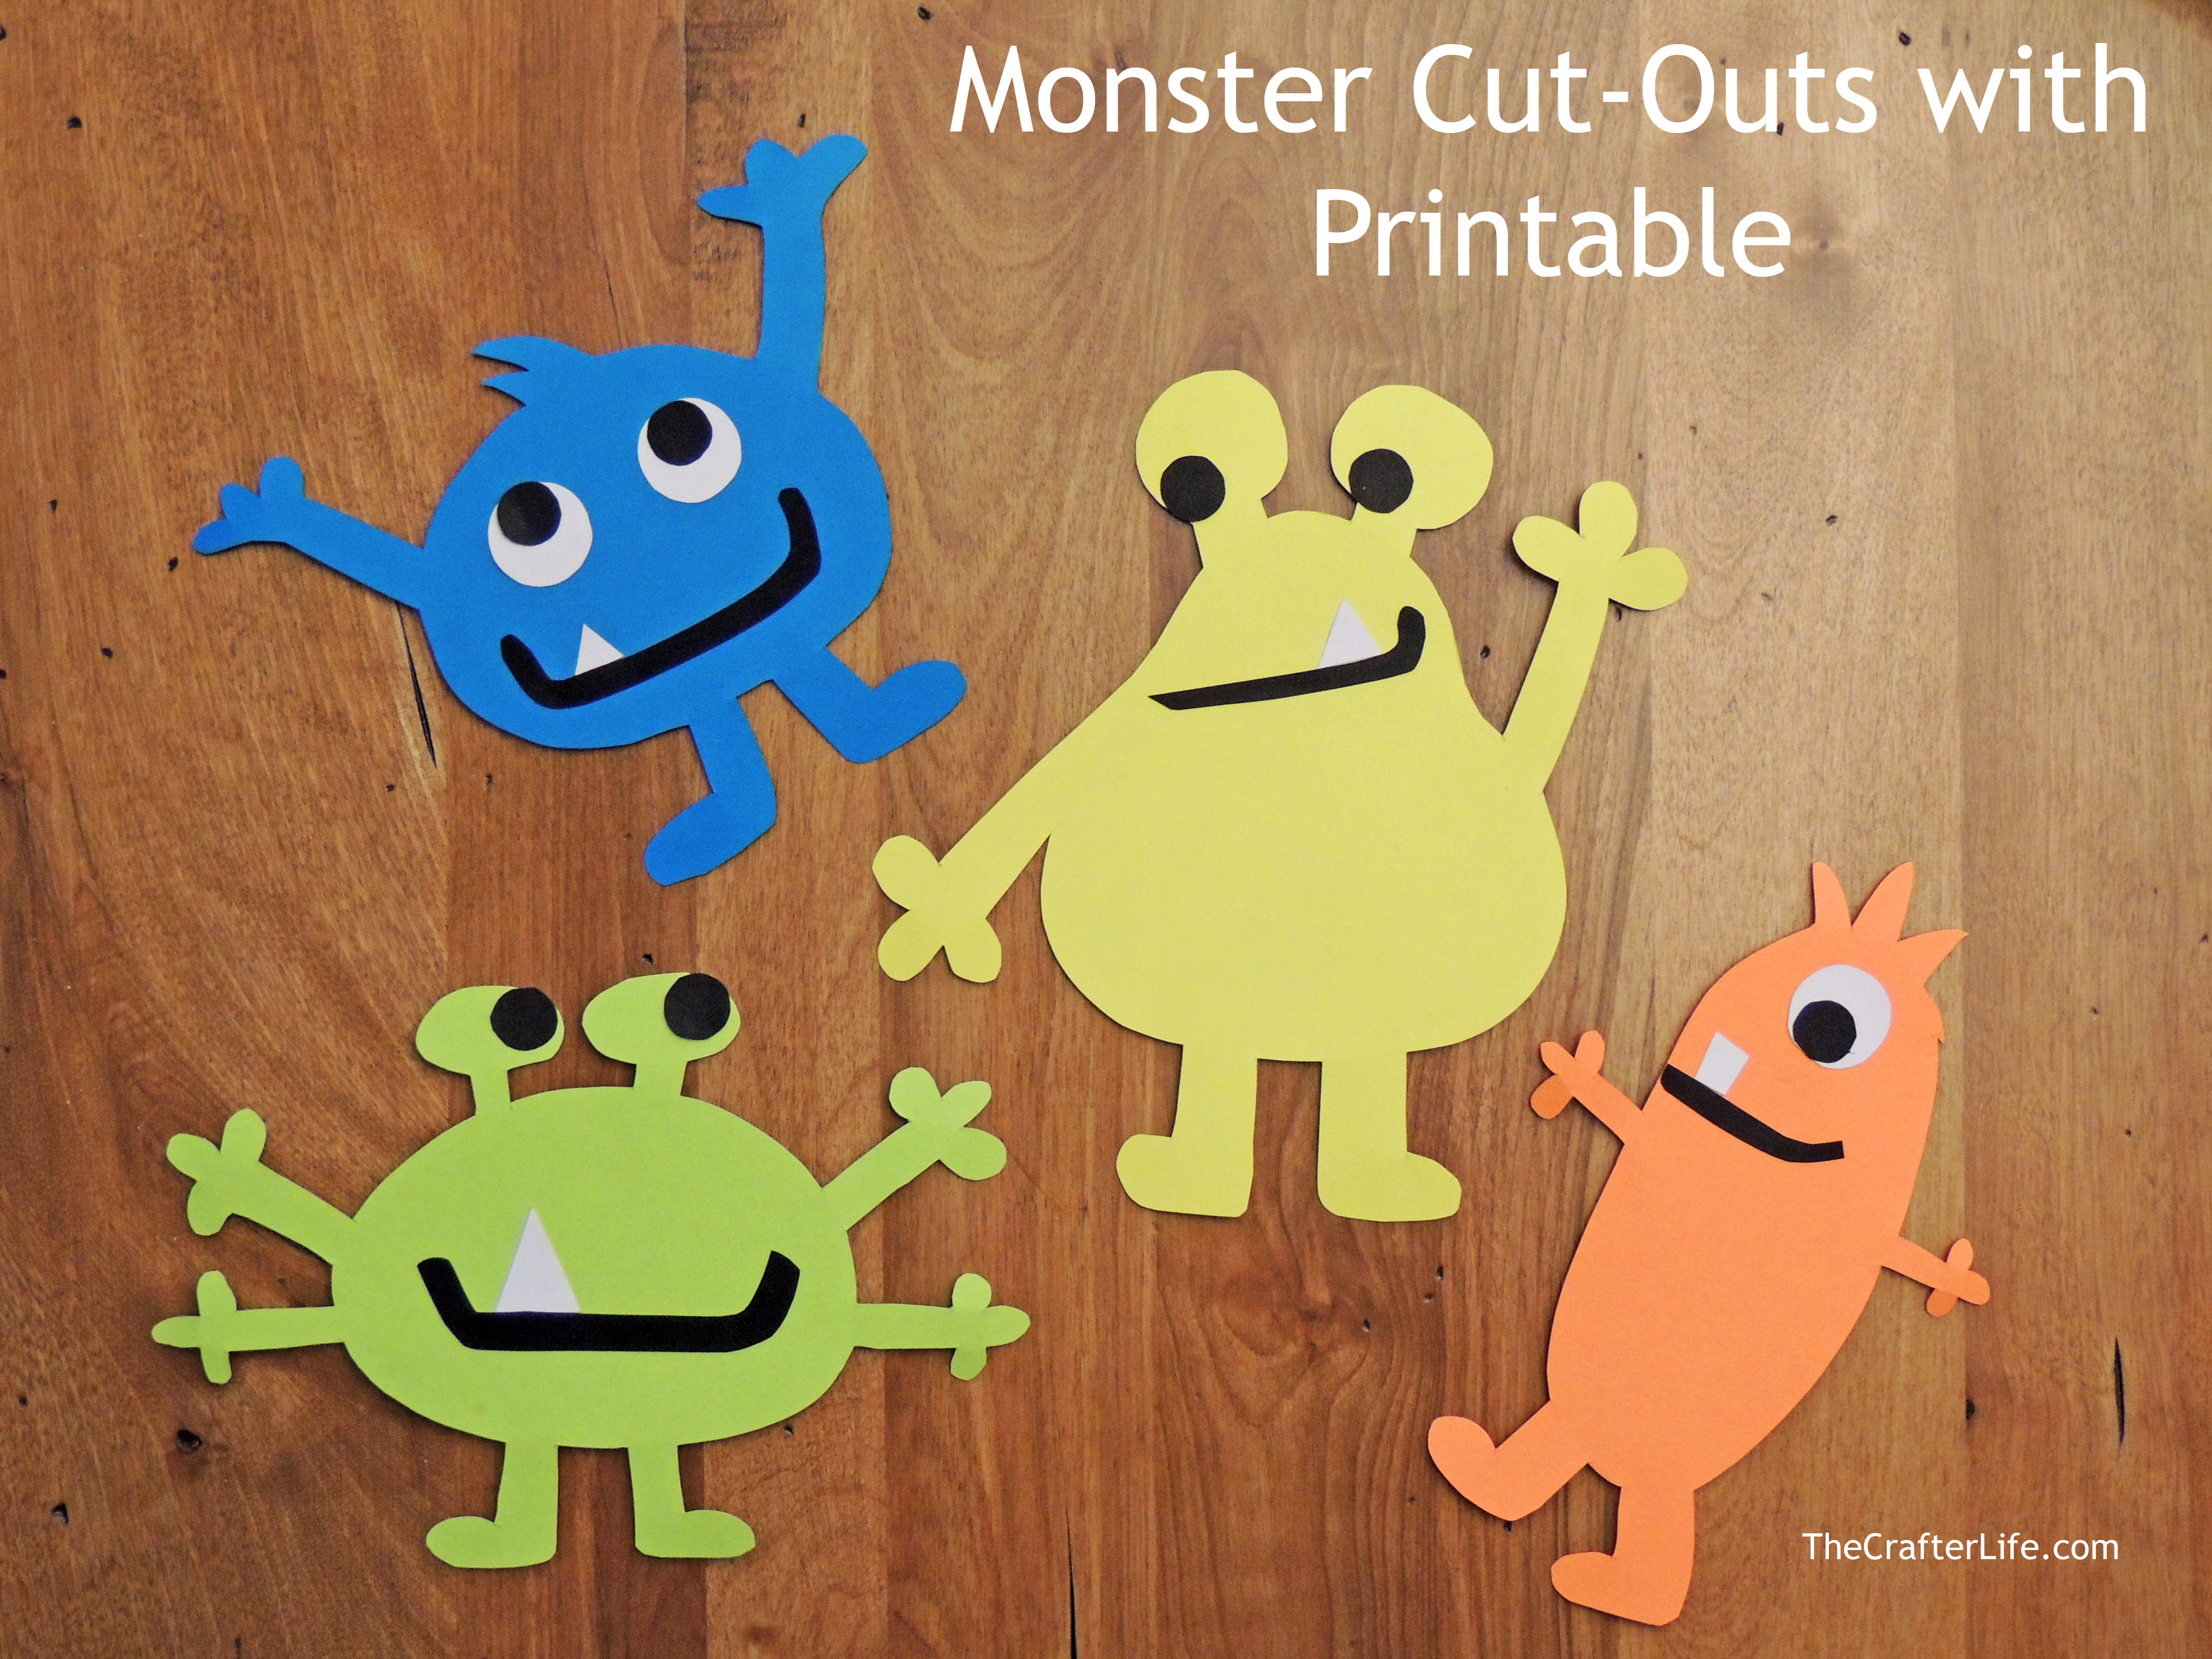 Monster Cut-Outs With Printable - The Crafter Life - Free Printable Monster Templates